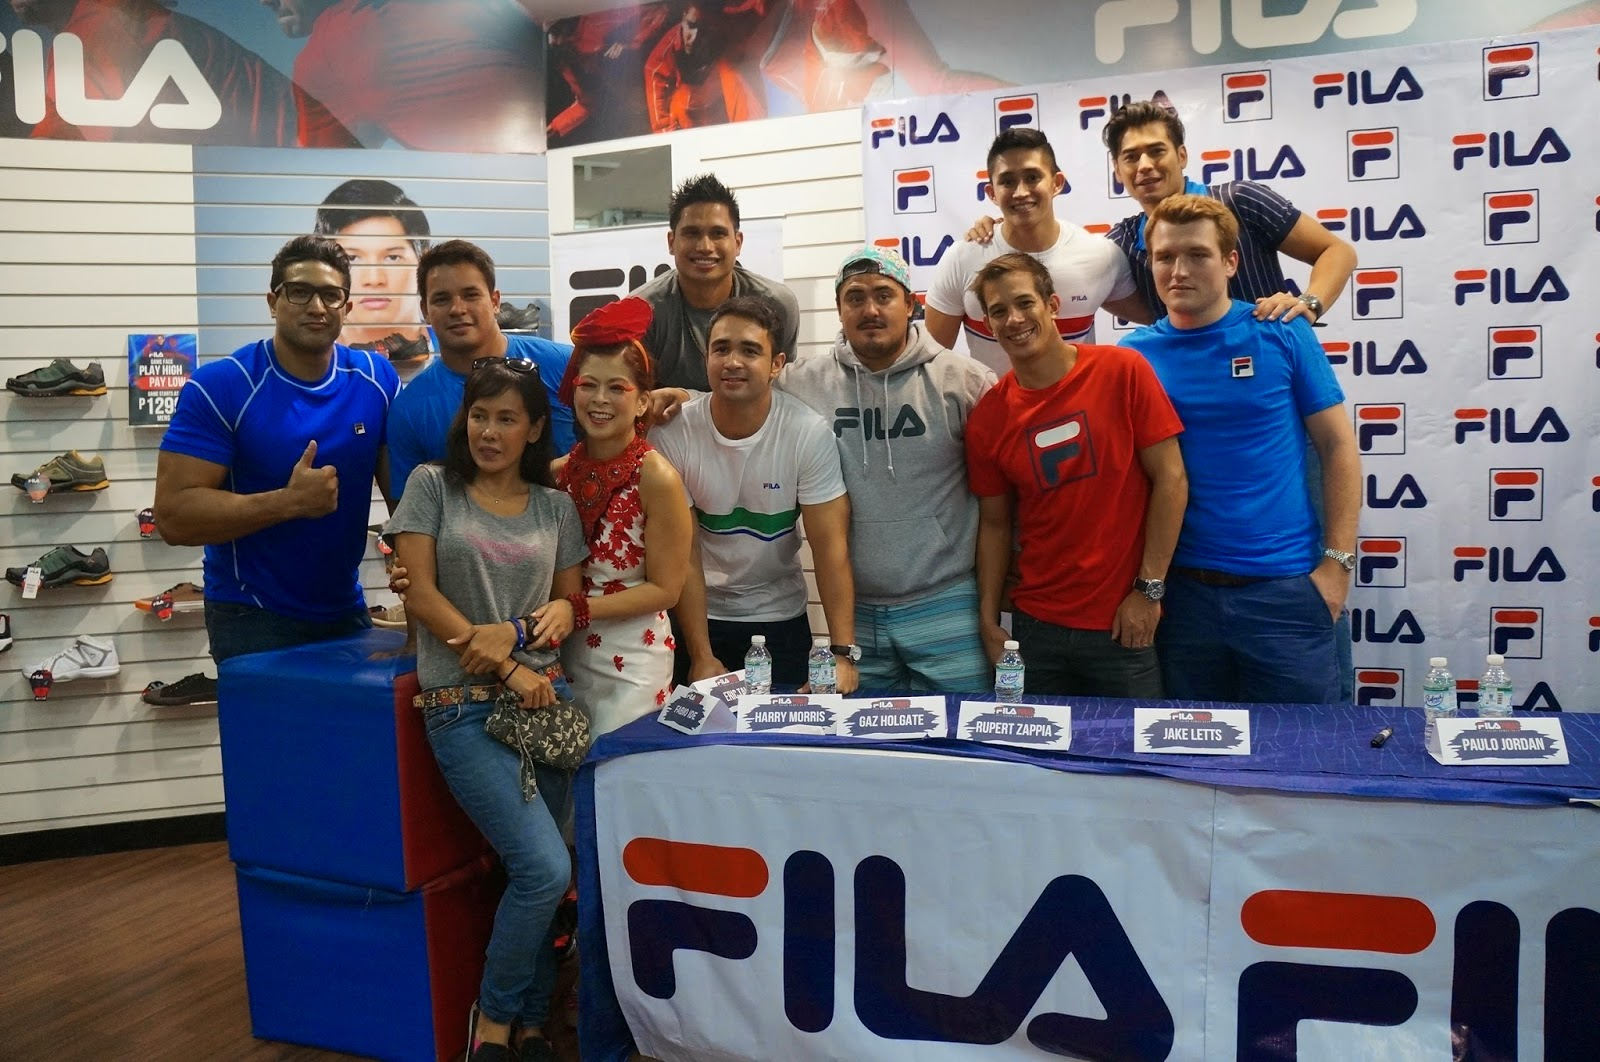 Filapinas  Fila Brand Endorsers Meet And Greet With Fans